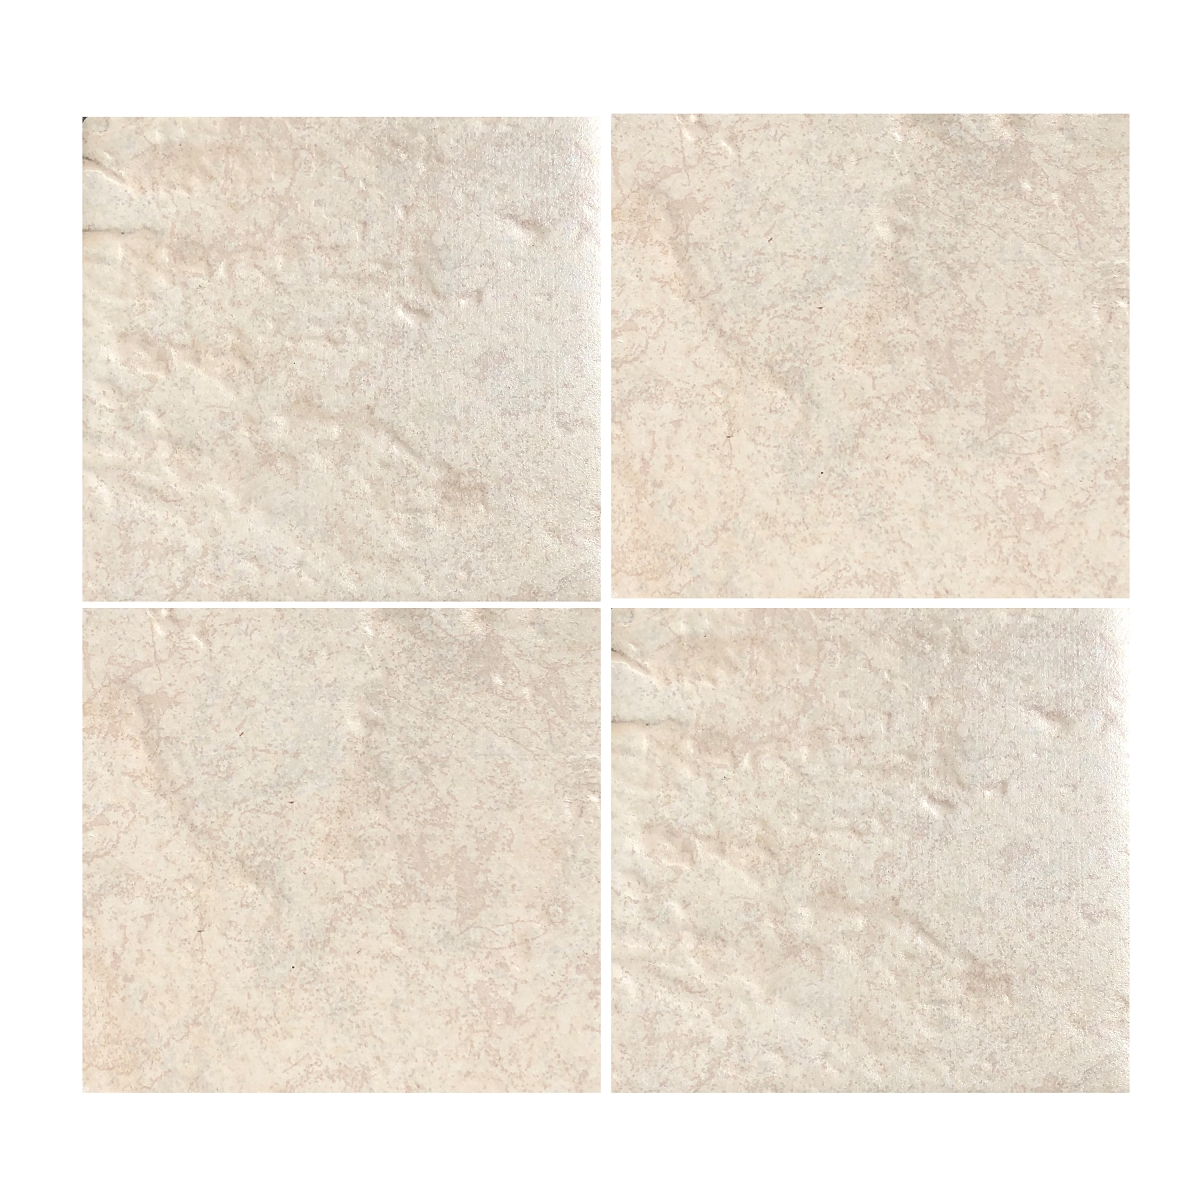 Porcelain Tile 6